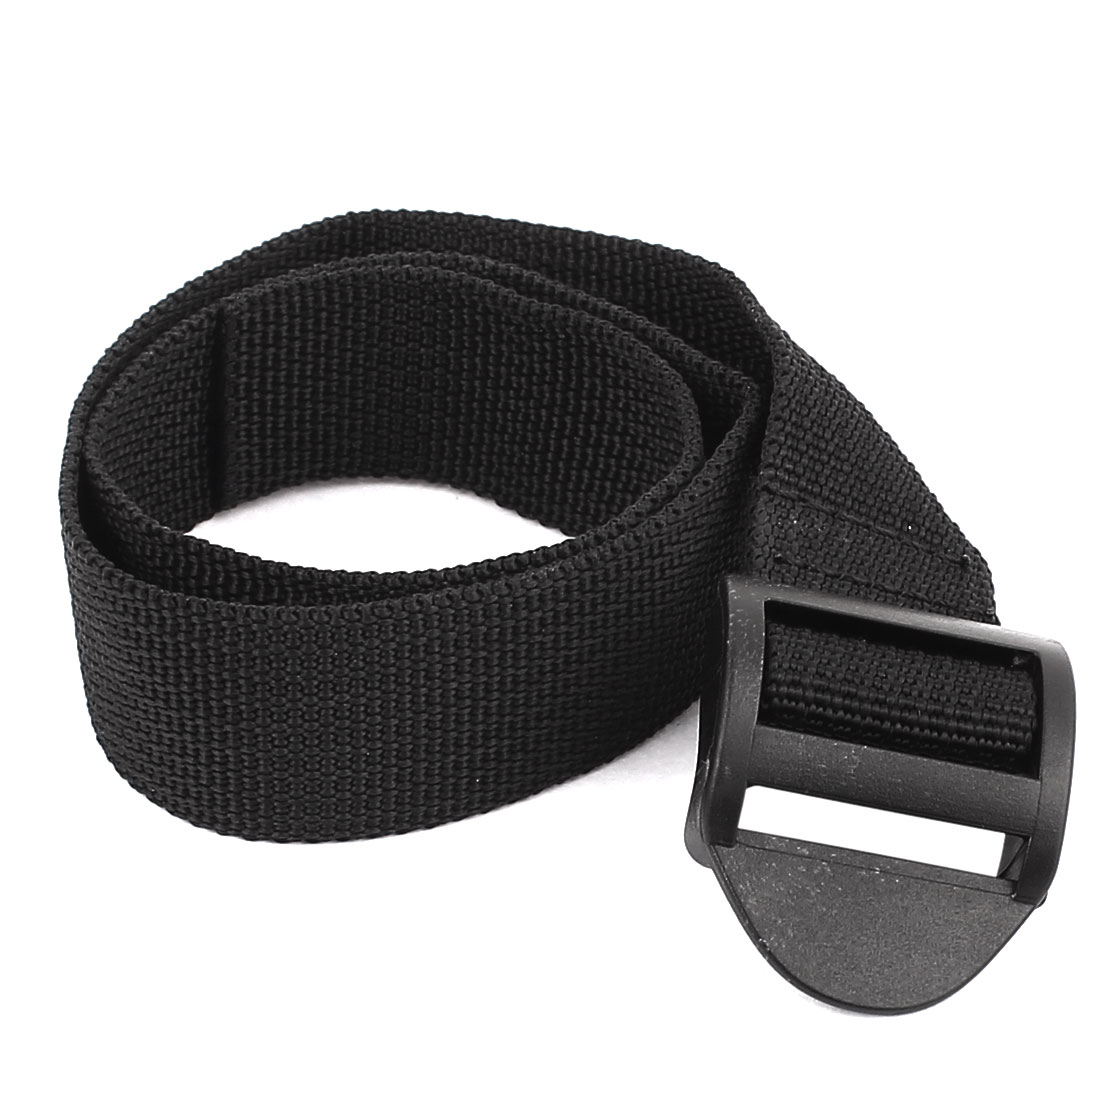 Travel Plastic Release Buckle Adjustable Luggage Baggage Packing Strap Belt Band 50cm x 25mm